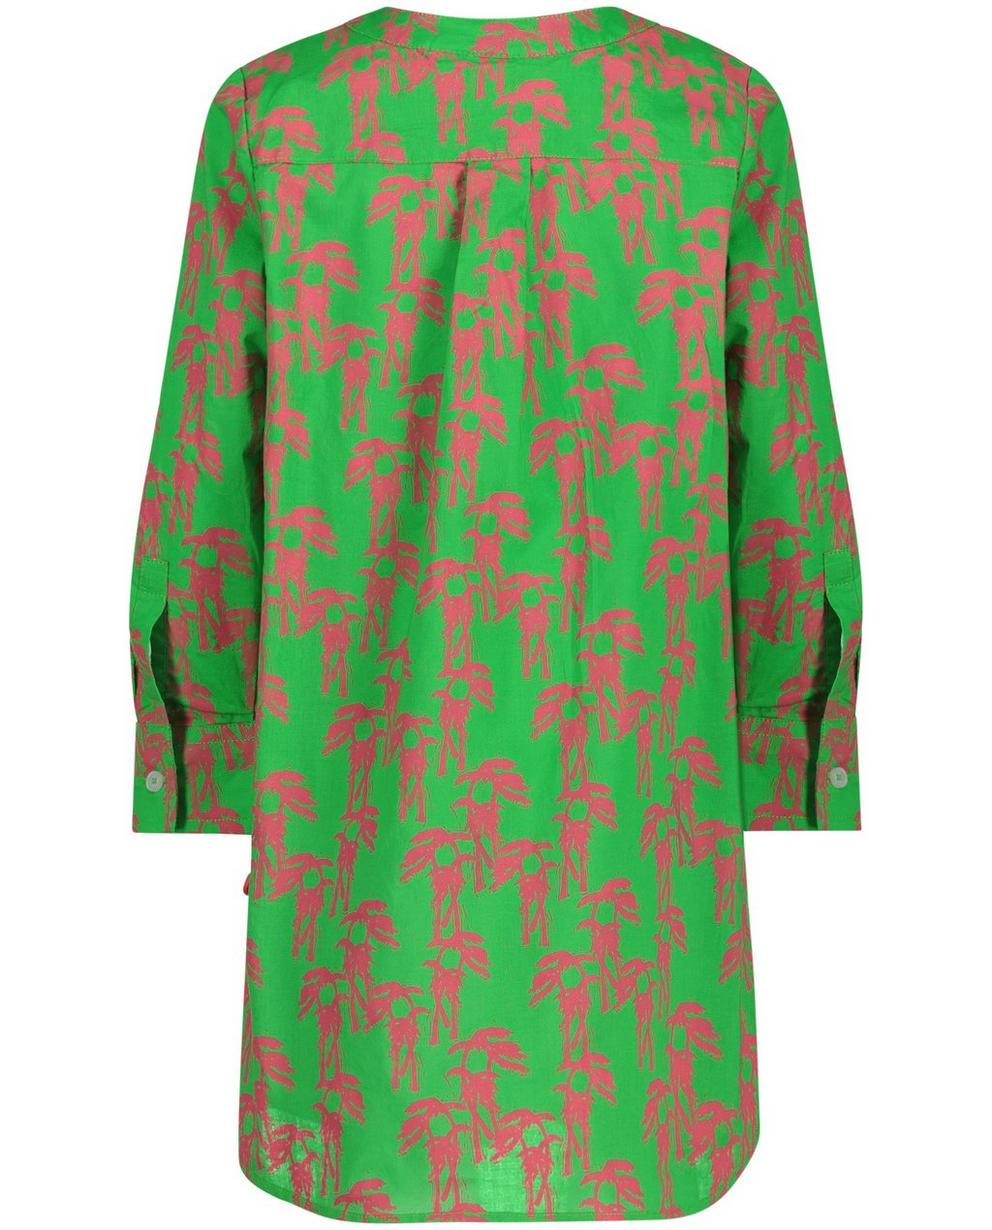 Robes - Robe-chemisier verte